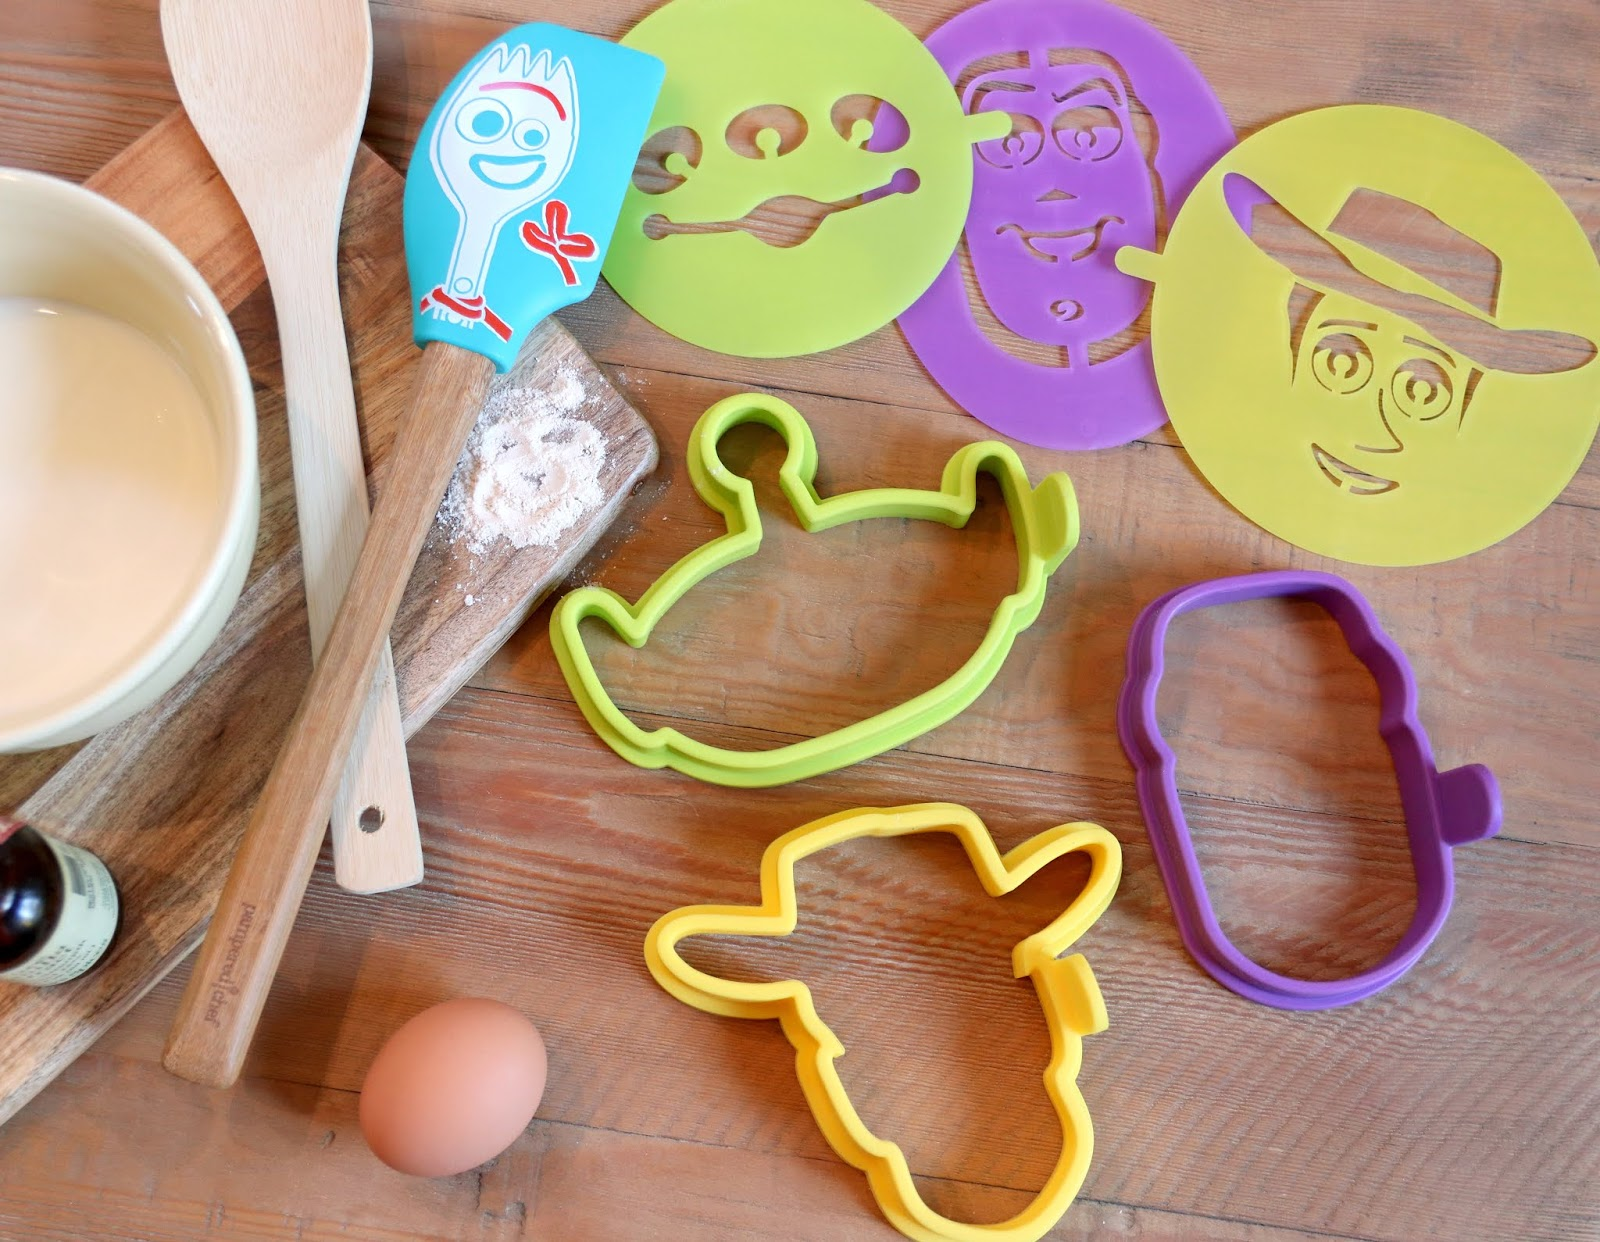 Pampered Chef FORKY SCRAPER silicone head bamboo handle Disney•Pixar Toy Story 4